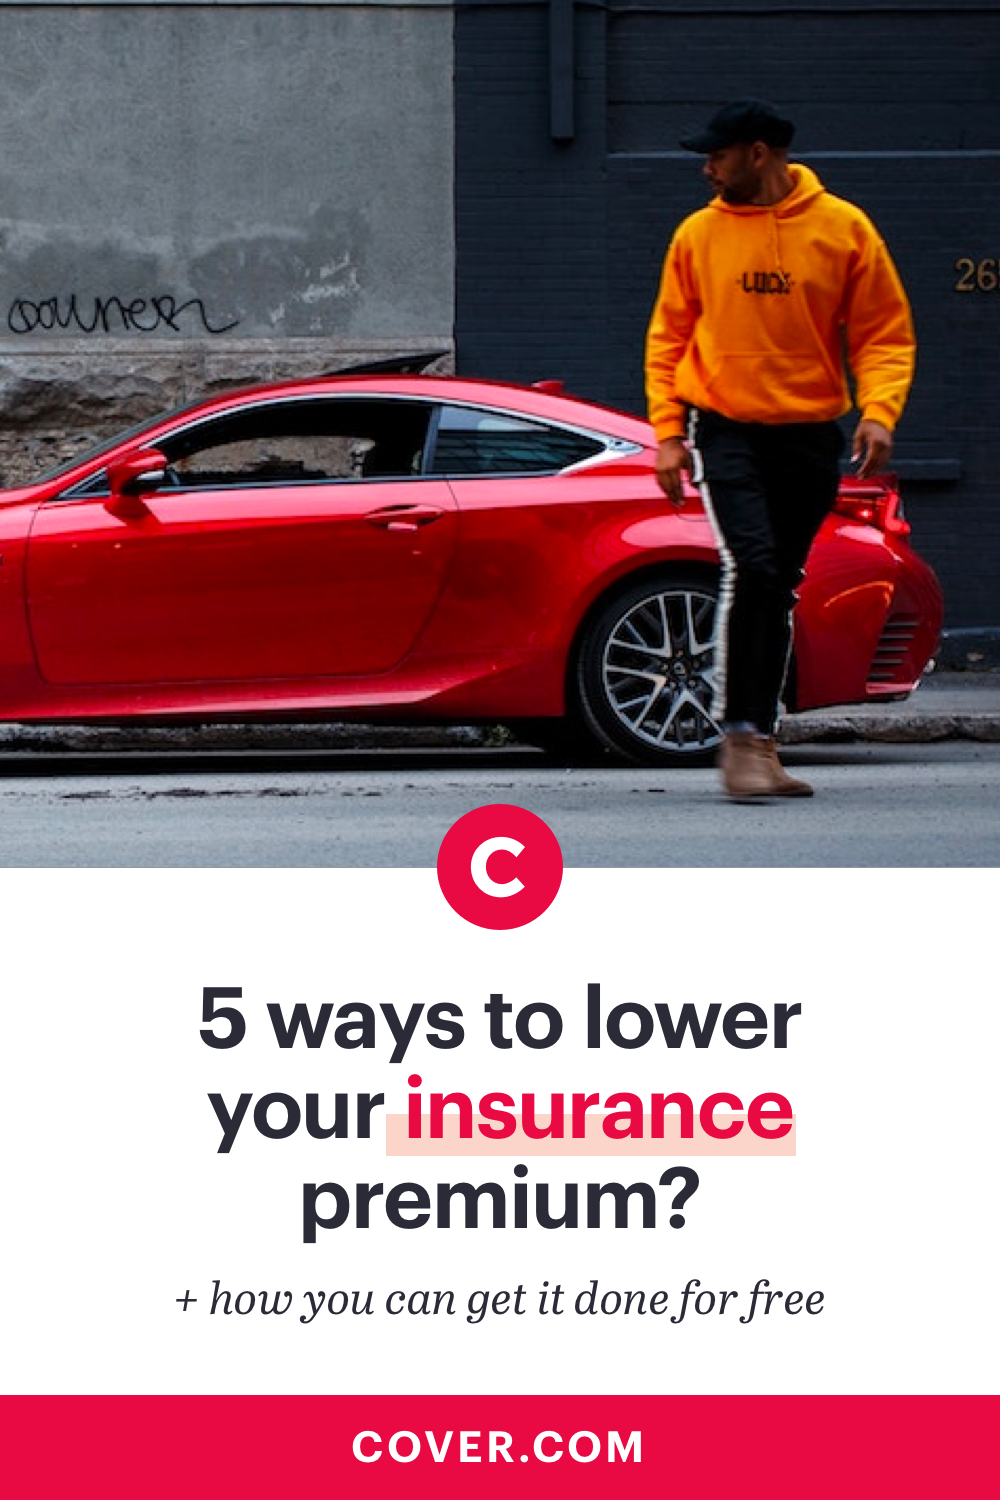 What Is An Insurance Premium? (With images) Insurance